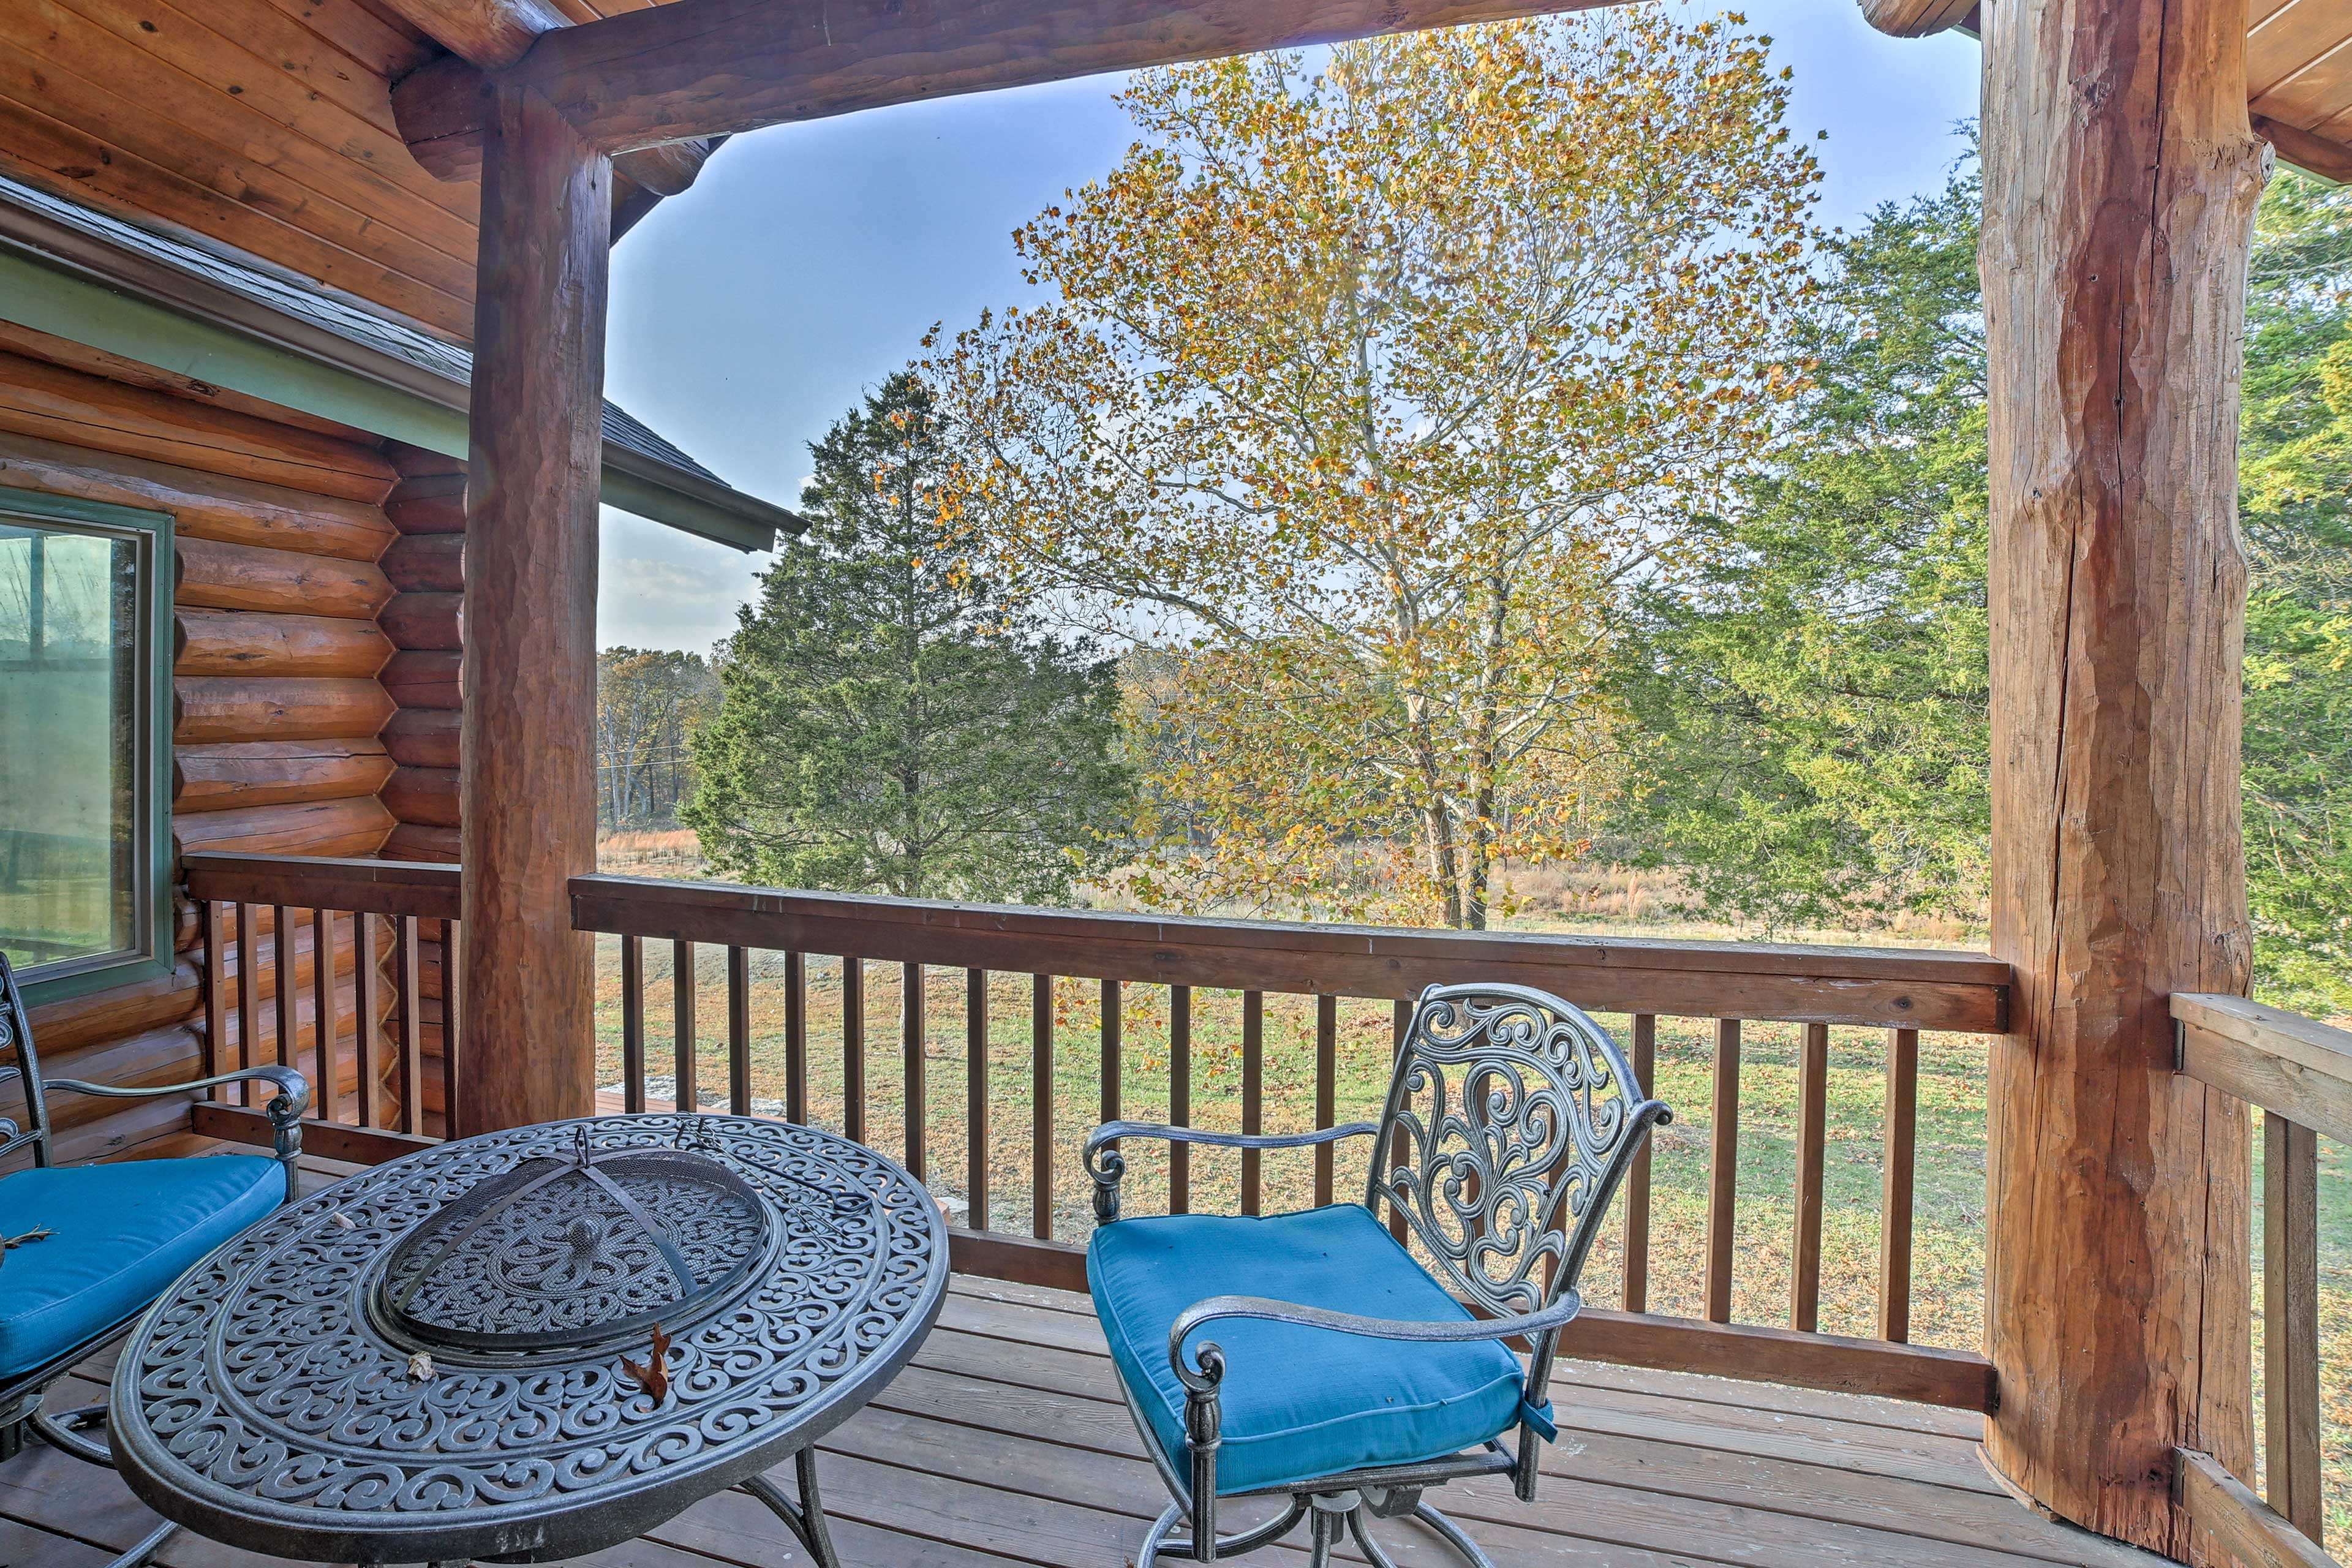 Step out onto the master suite balcony to find a table fire pit.